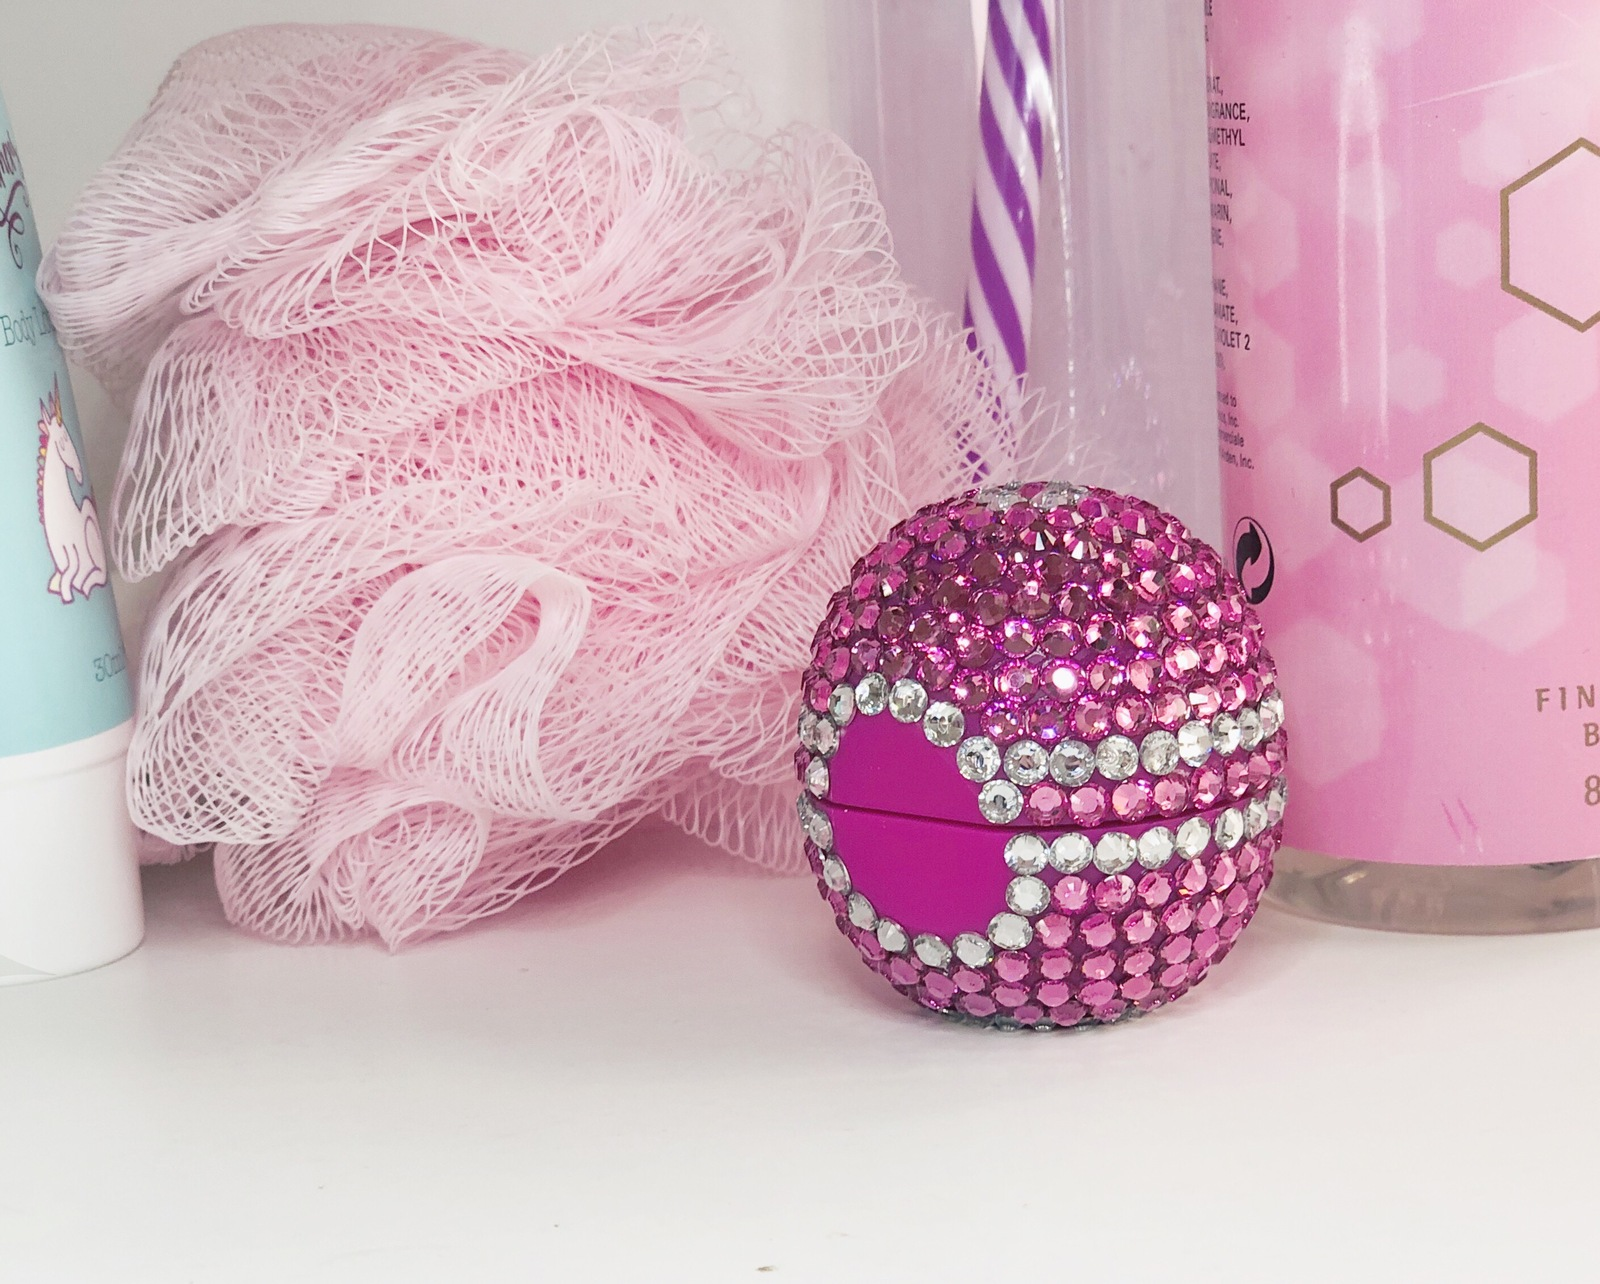 Embellished organic eos lip balm. Wildberry, pink sparkle & bling. Great gift